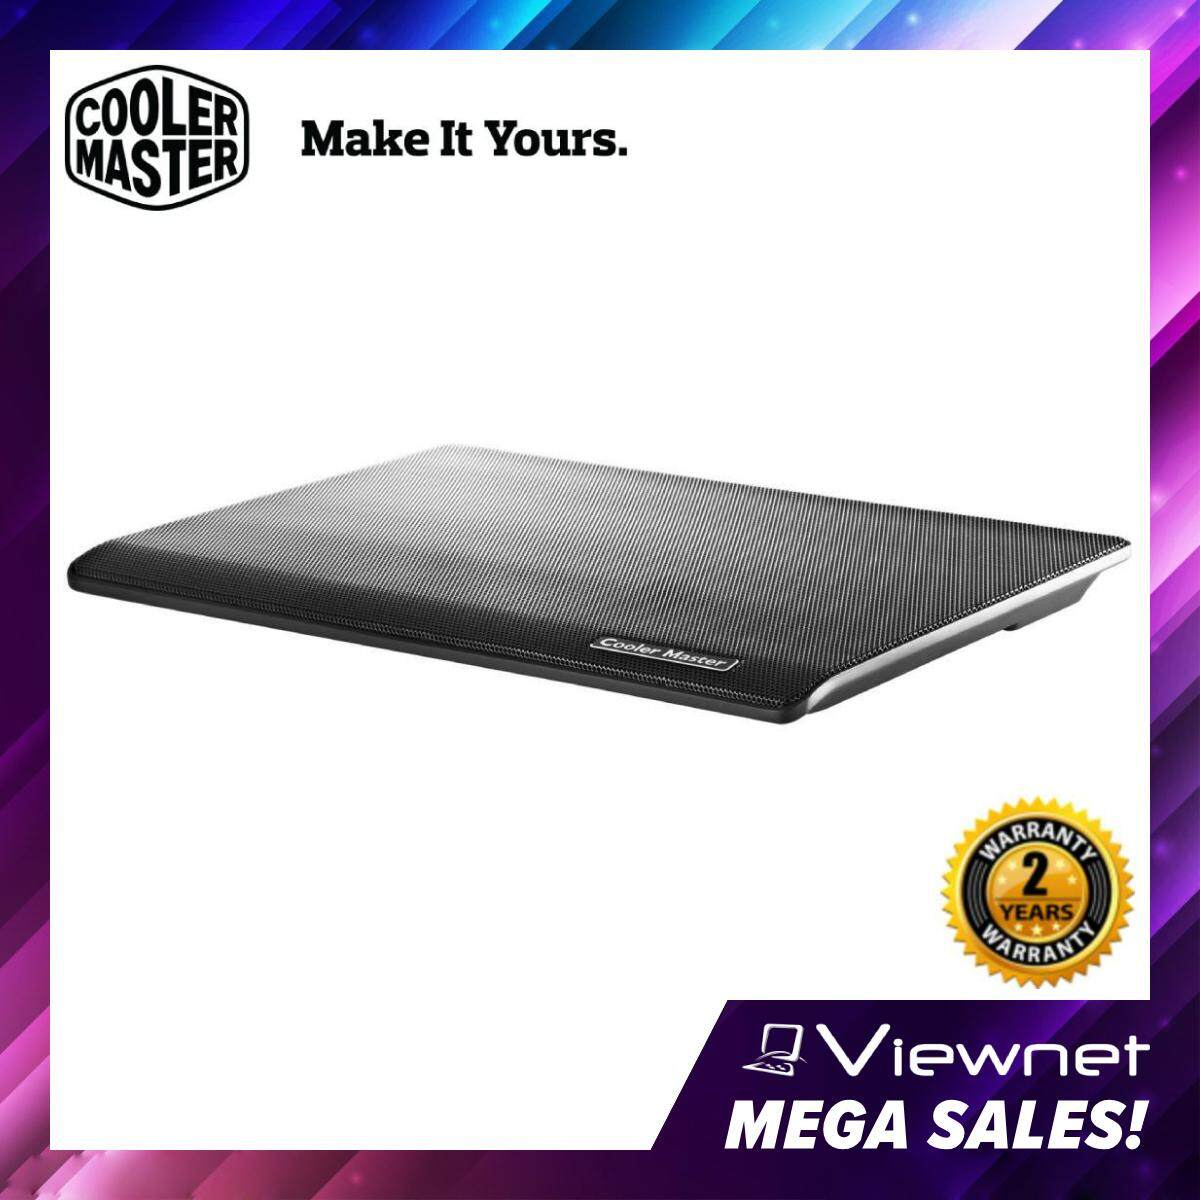 Cooler Master Notepal i100 Silent 140mm Fan Ultra Slim Ergonomic Mesh USB 2.0 Notebook Cooler for up to 15.4 Laptop (R9-NBC-I1HK-GP) Malaysia